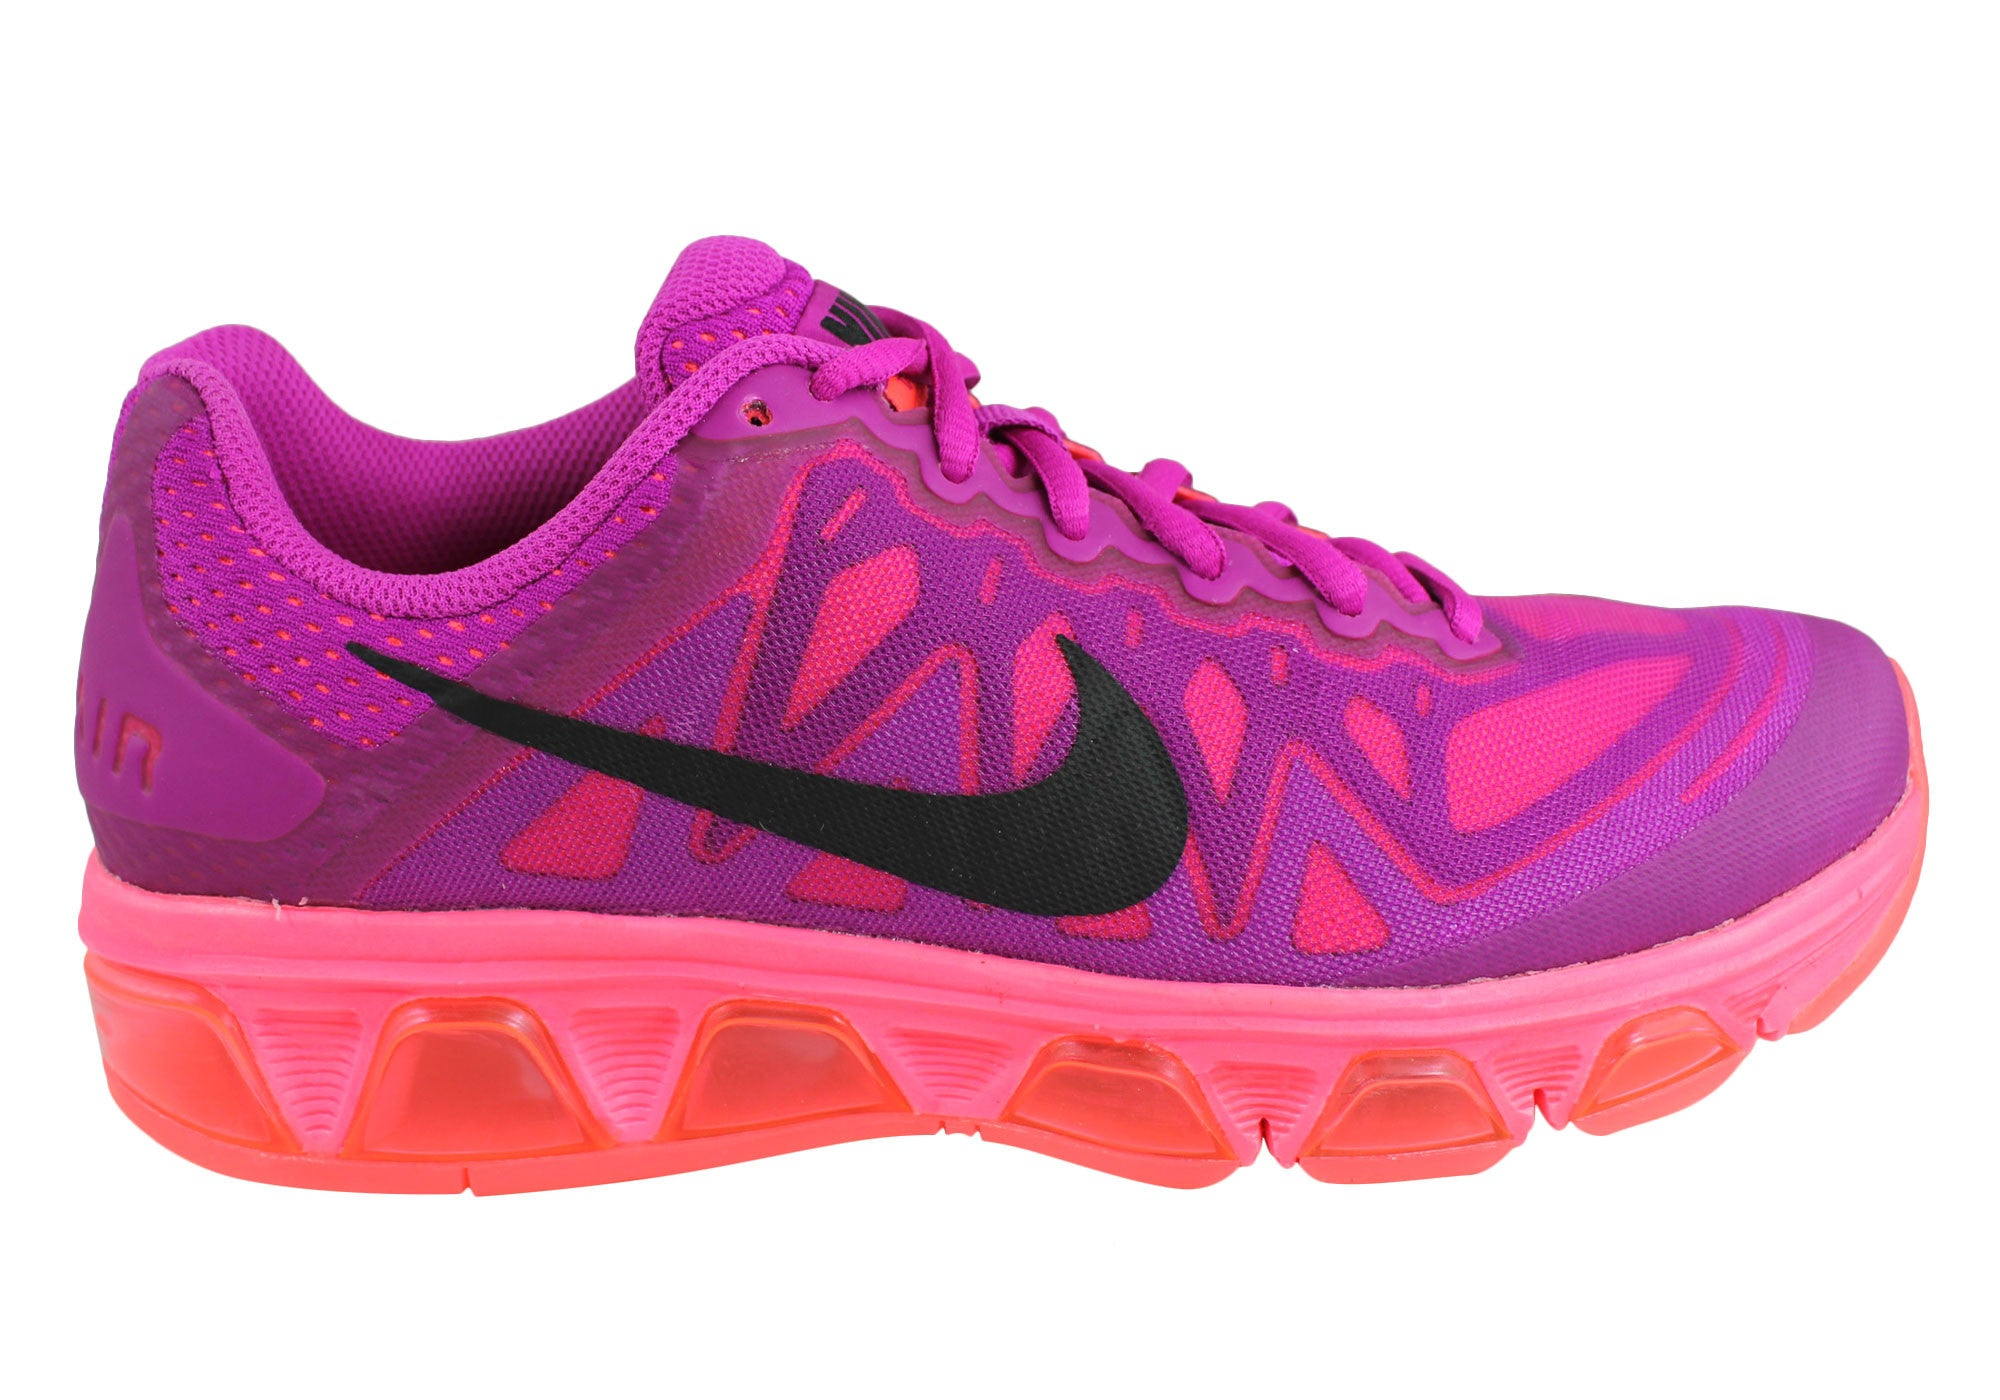 New-Nike-Air-Max-Tailwind-7-Womens-Cushioned-Running-Shoes